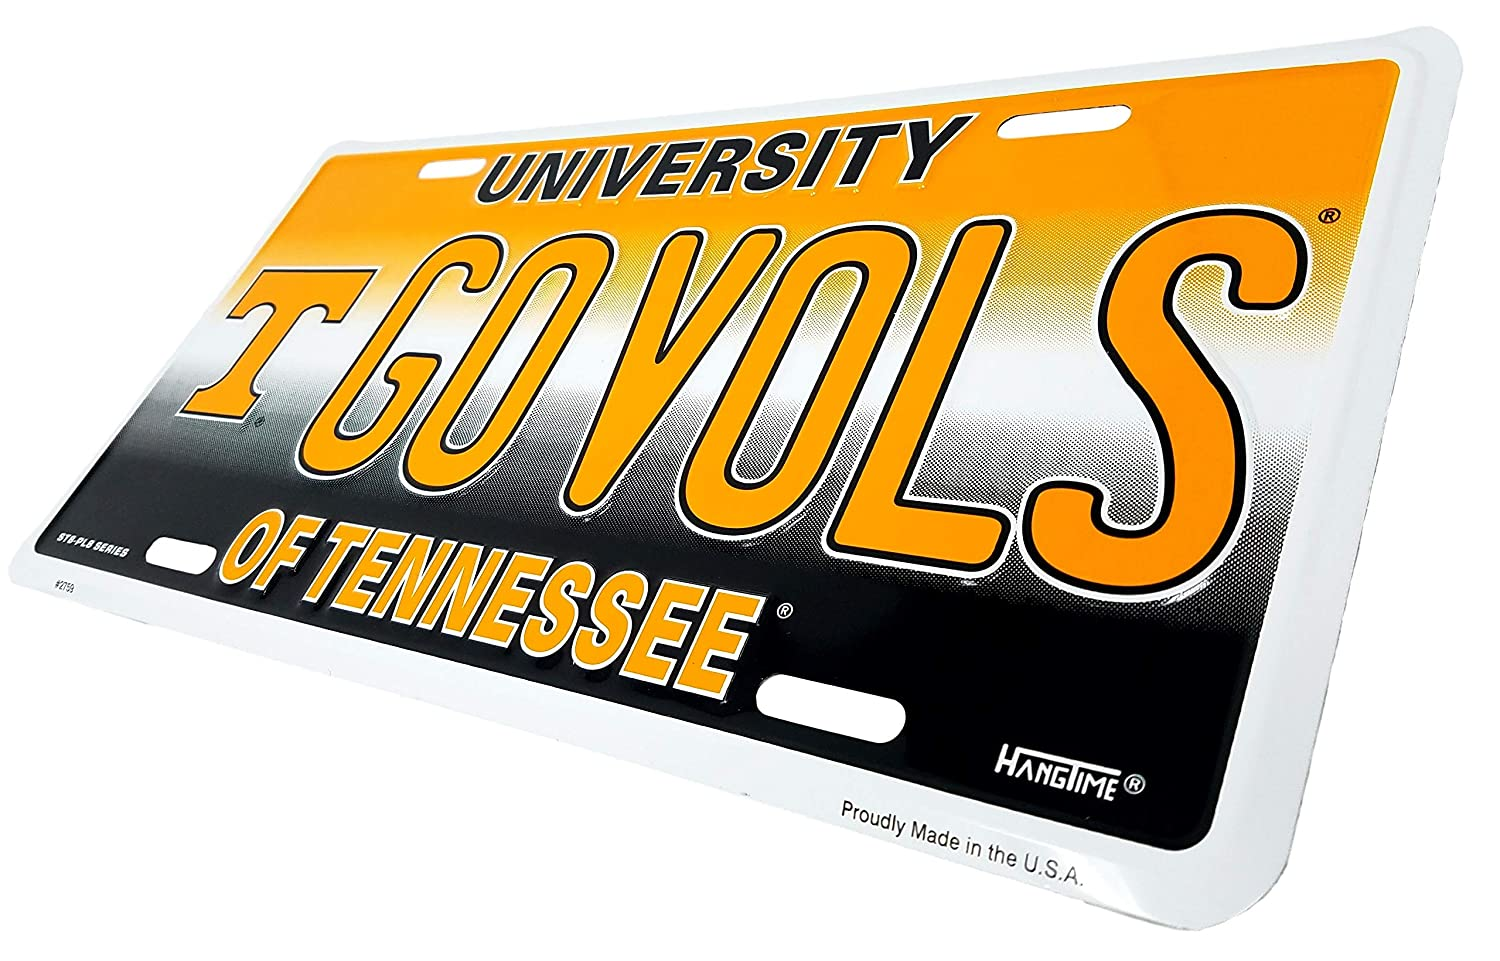 Ramsons Imports 12 x 6 University of Tennessee Go Vols License Plate Hangtime